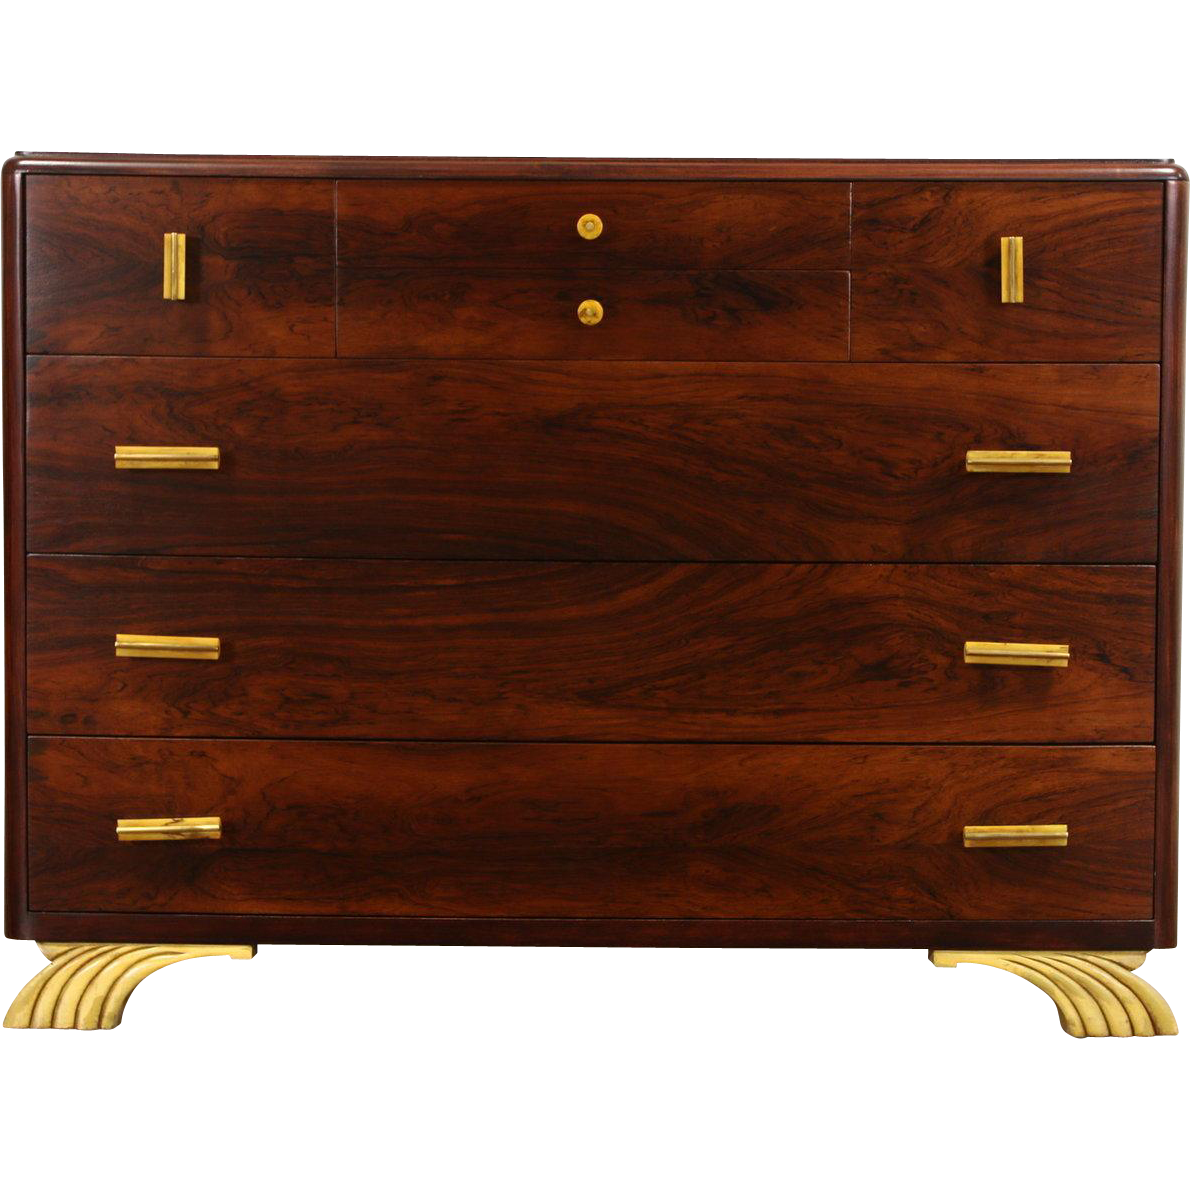 Art Deco Rosewood 1930's Chest or Dresser, Bakelite Pulls, Signed Joerns